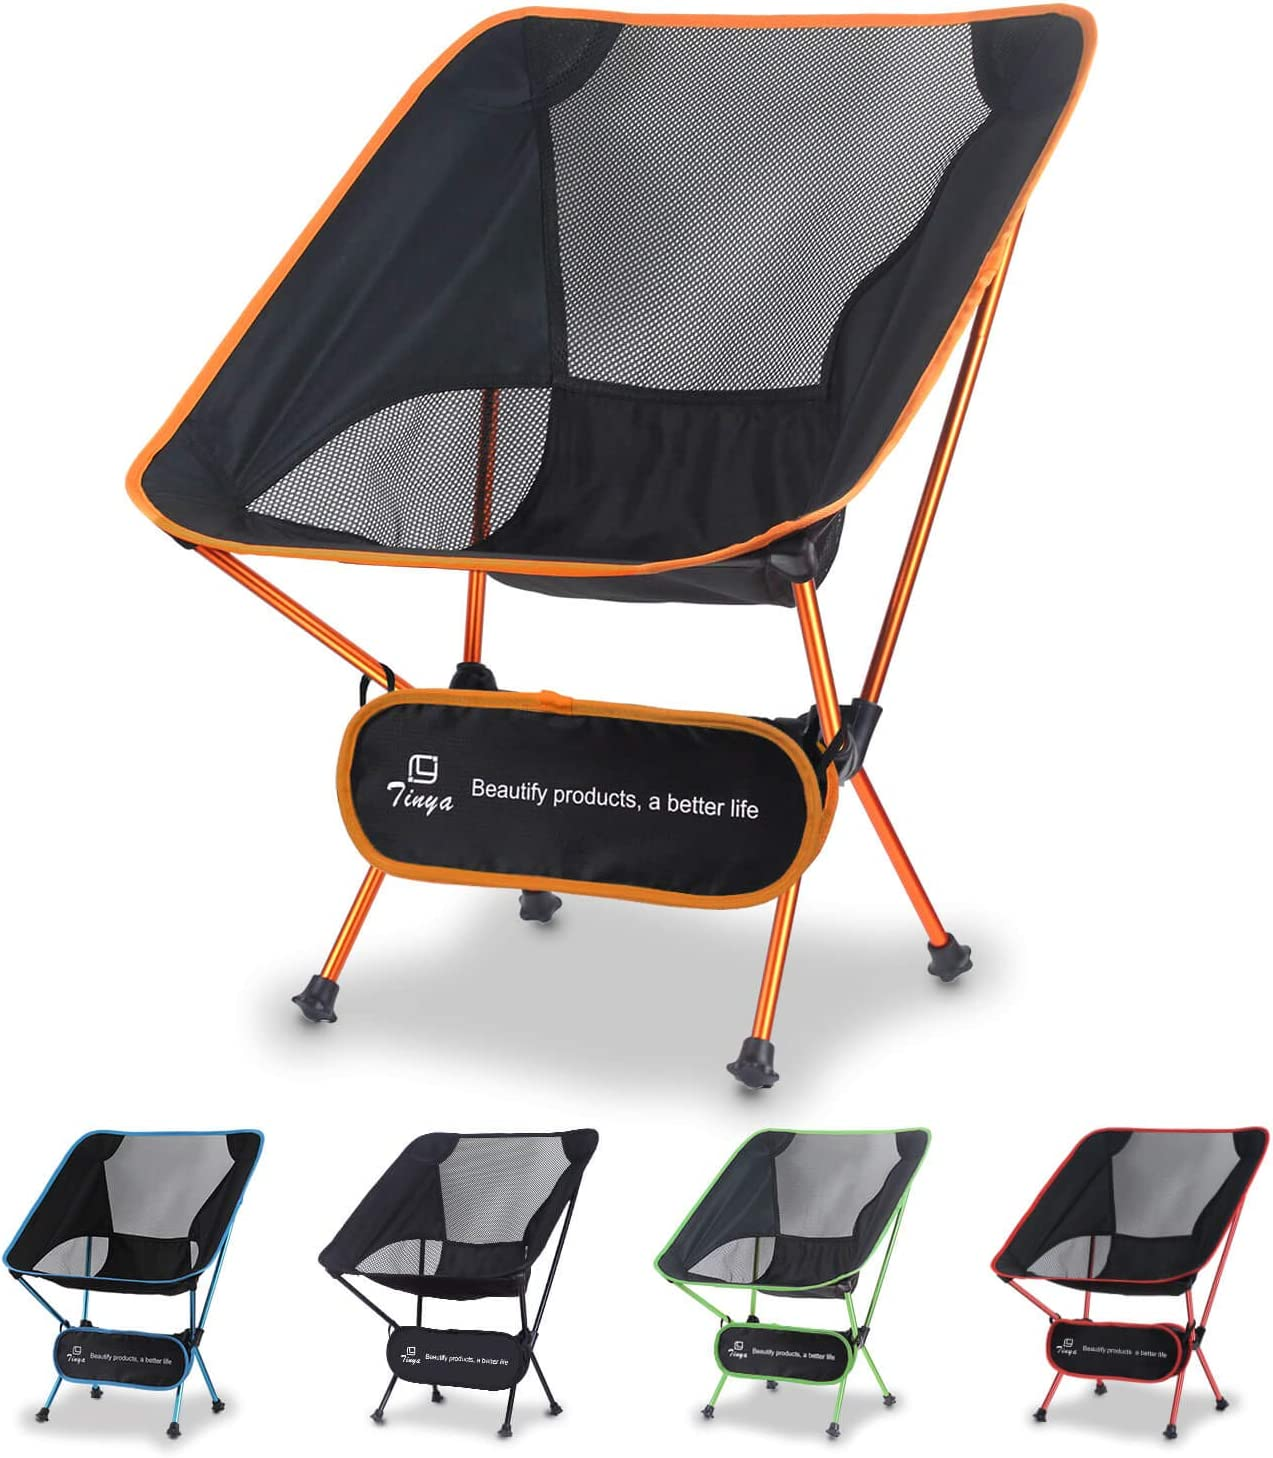 Tinya Ultralight Backpacking Camping Chair Kids Adults Backpacker Heavy Duty 300lb Capacity Packable Ultra Lite Collapsible Portable Lightweight Compact Folding Beach Outdoor Picnic Travel Hiking